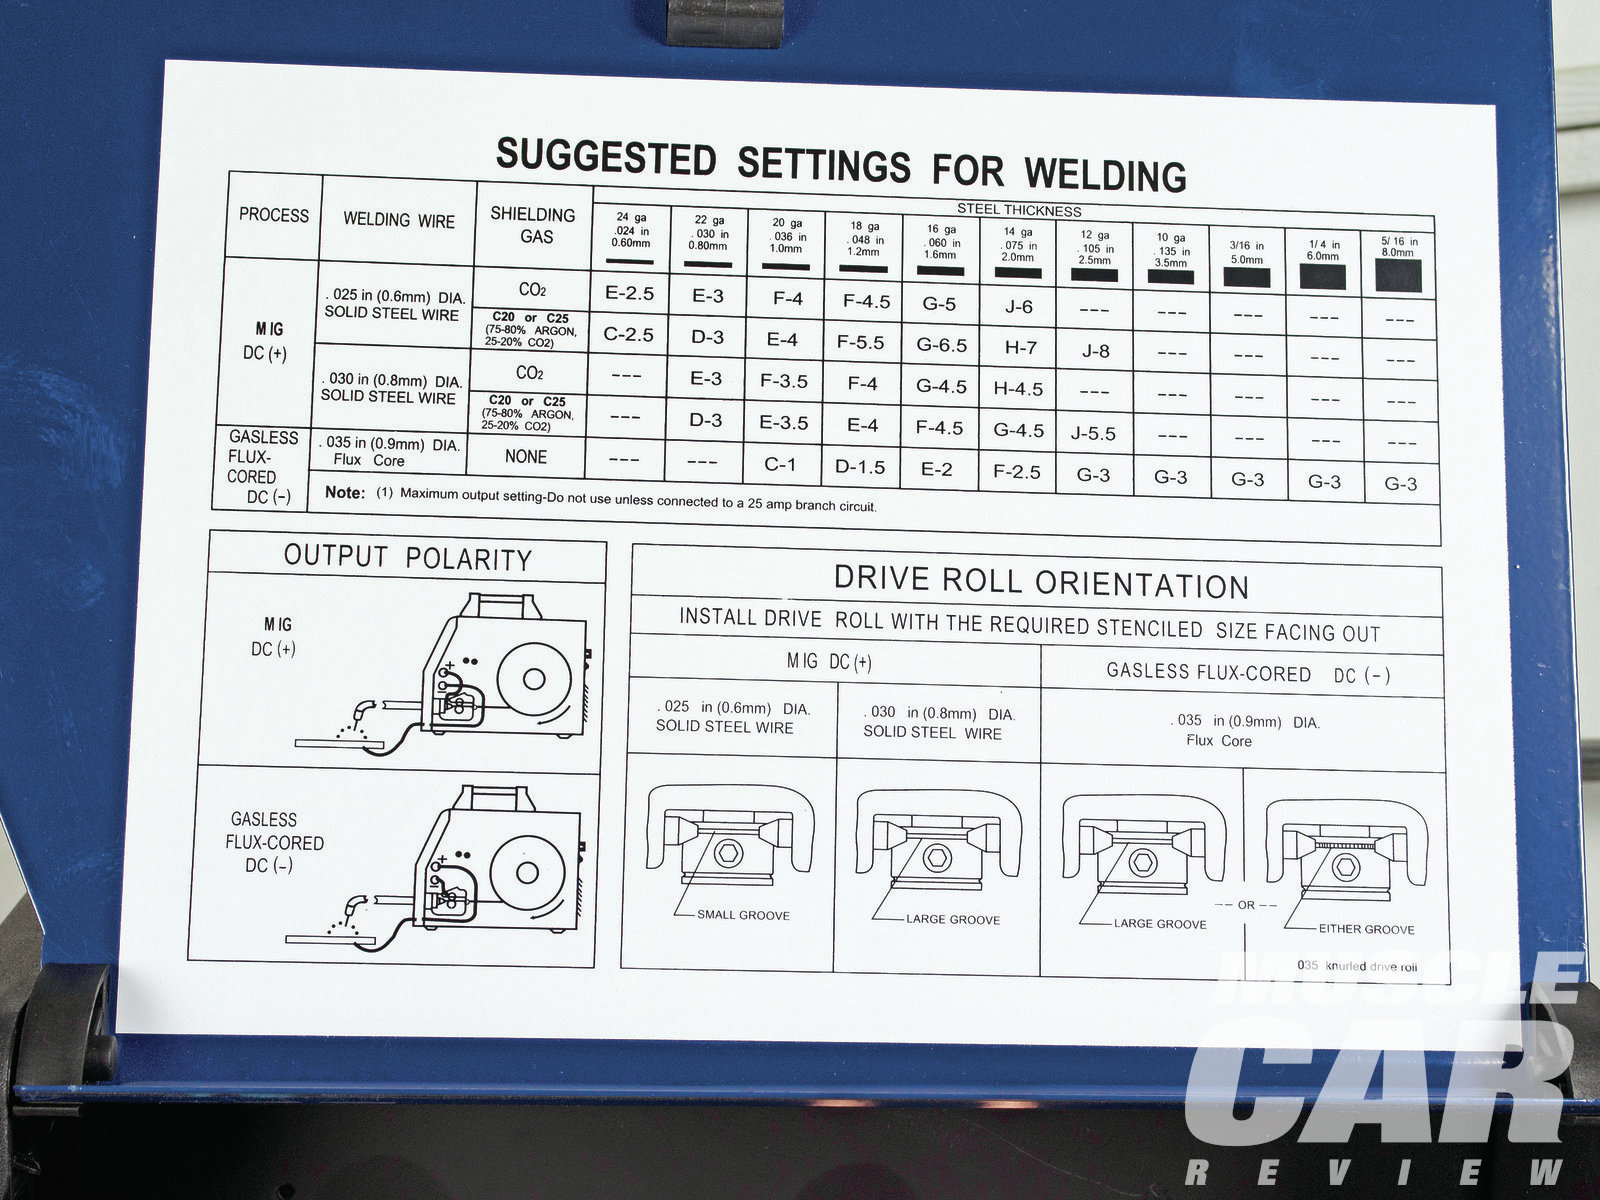 Millermatic 220 Welder Wiring Diagram Trusted Diagrams Welding Receptacle Lincoln For Control